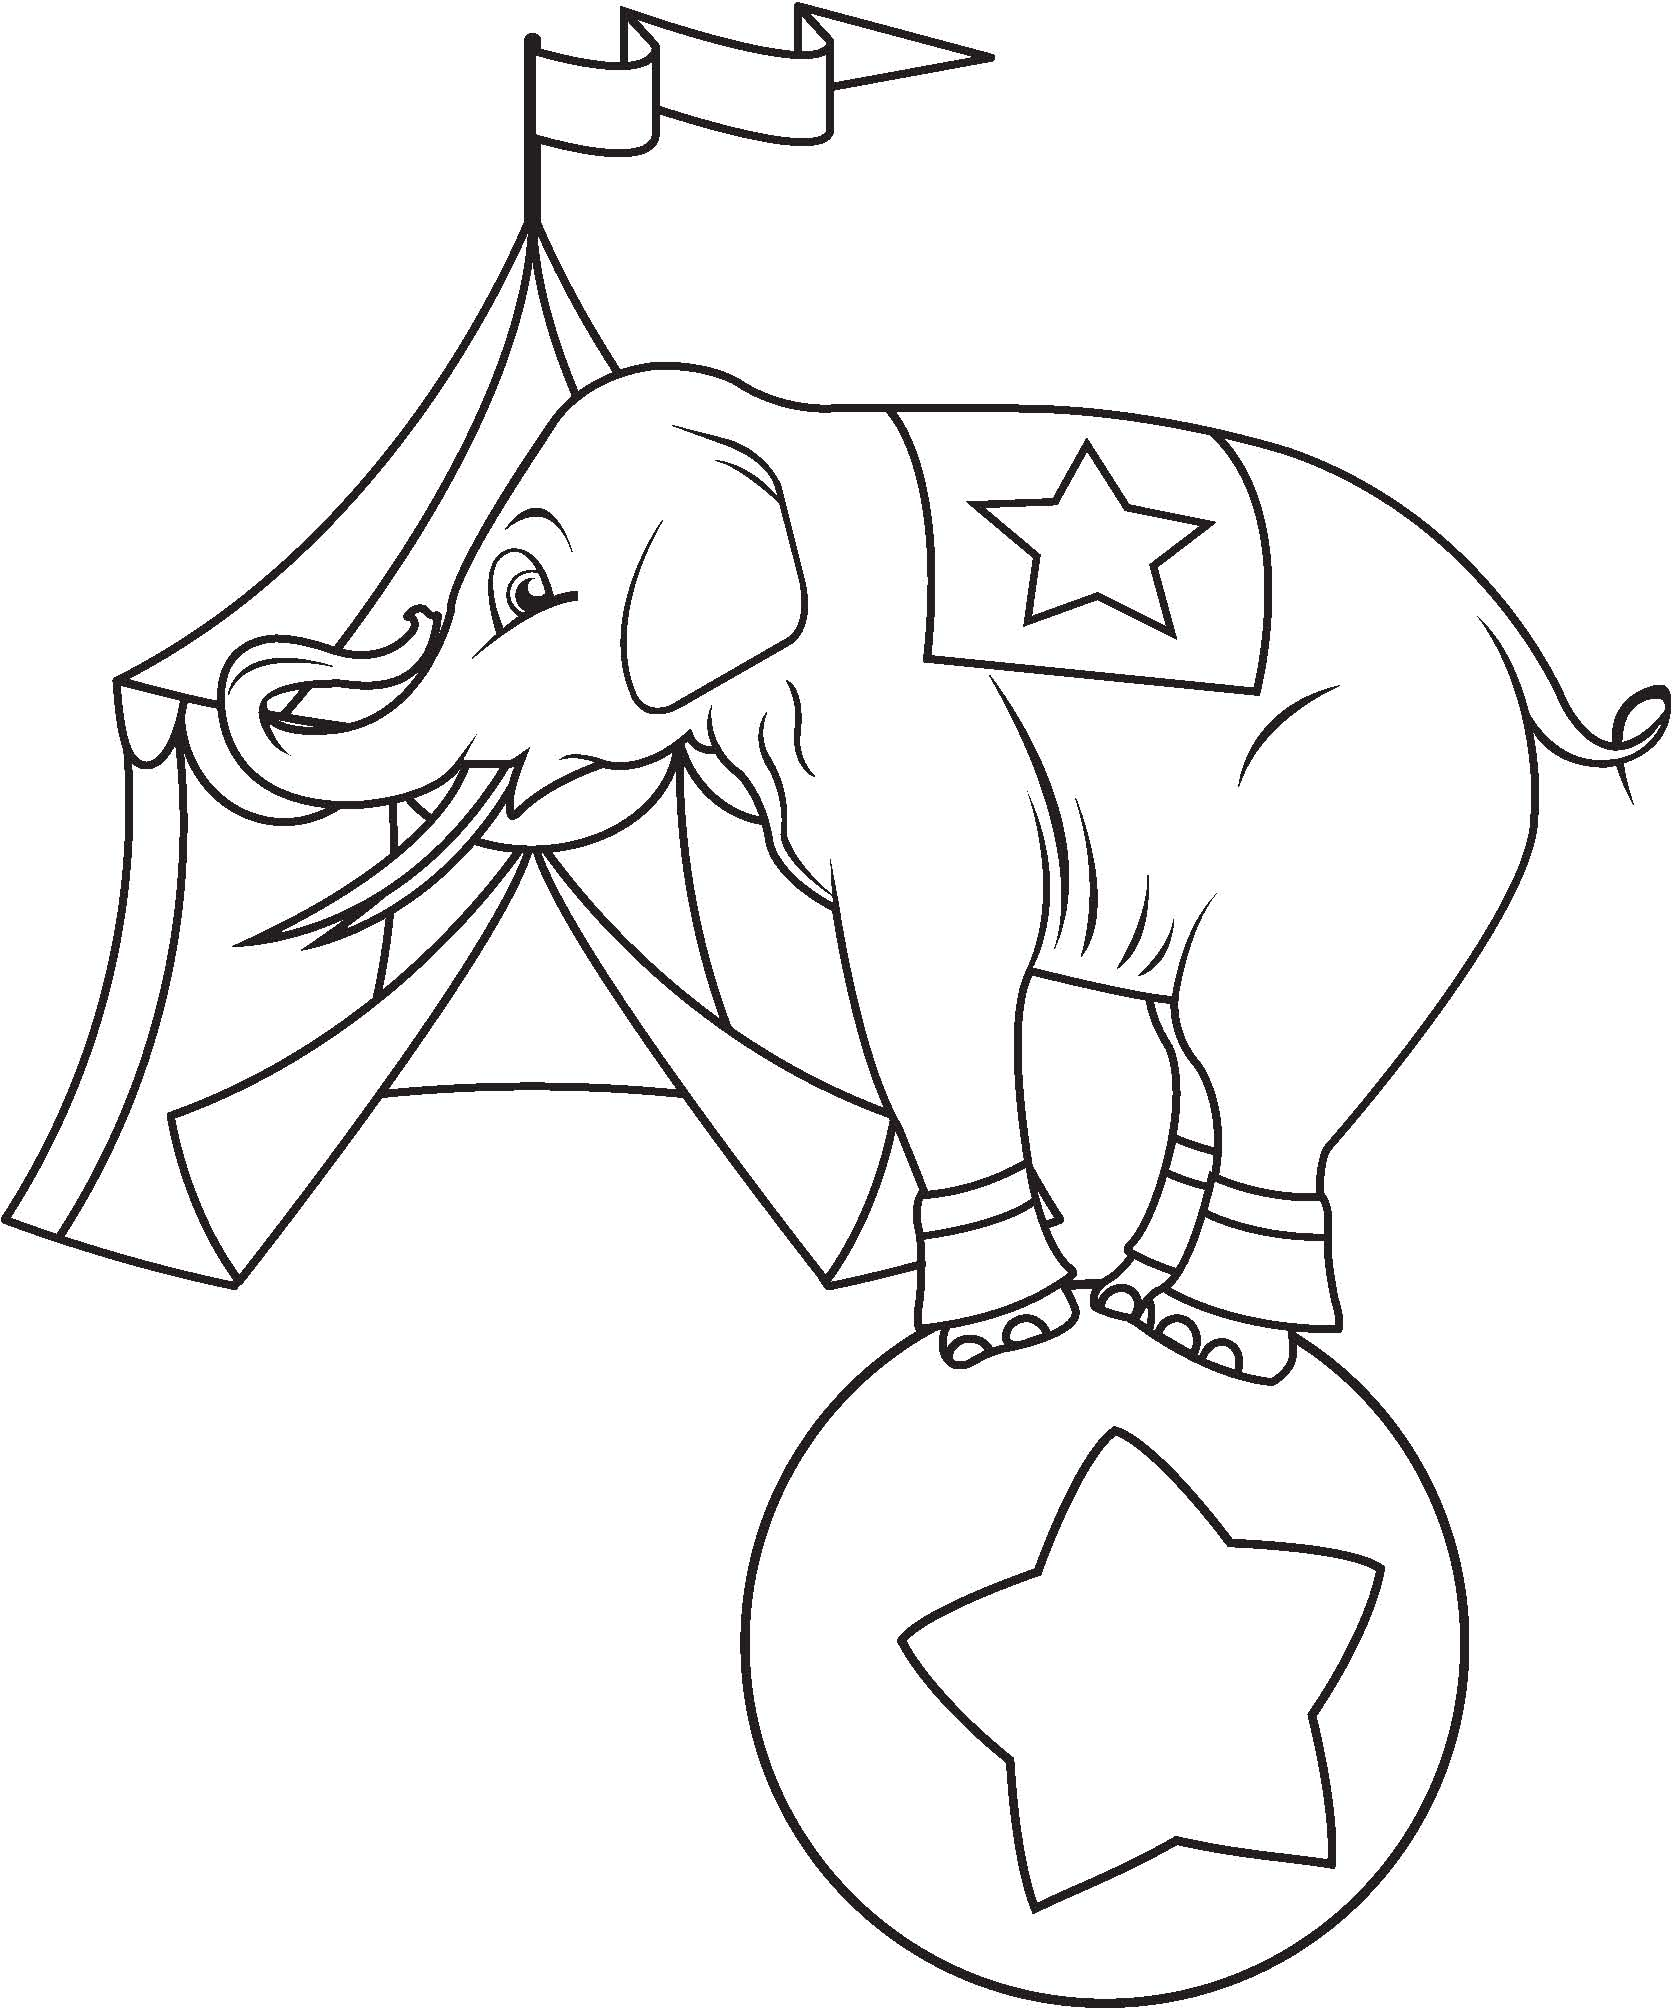 Free Coloring Pages Of Circus Train Car Circus Coloring Pages